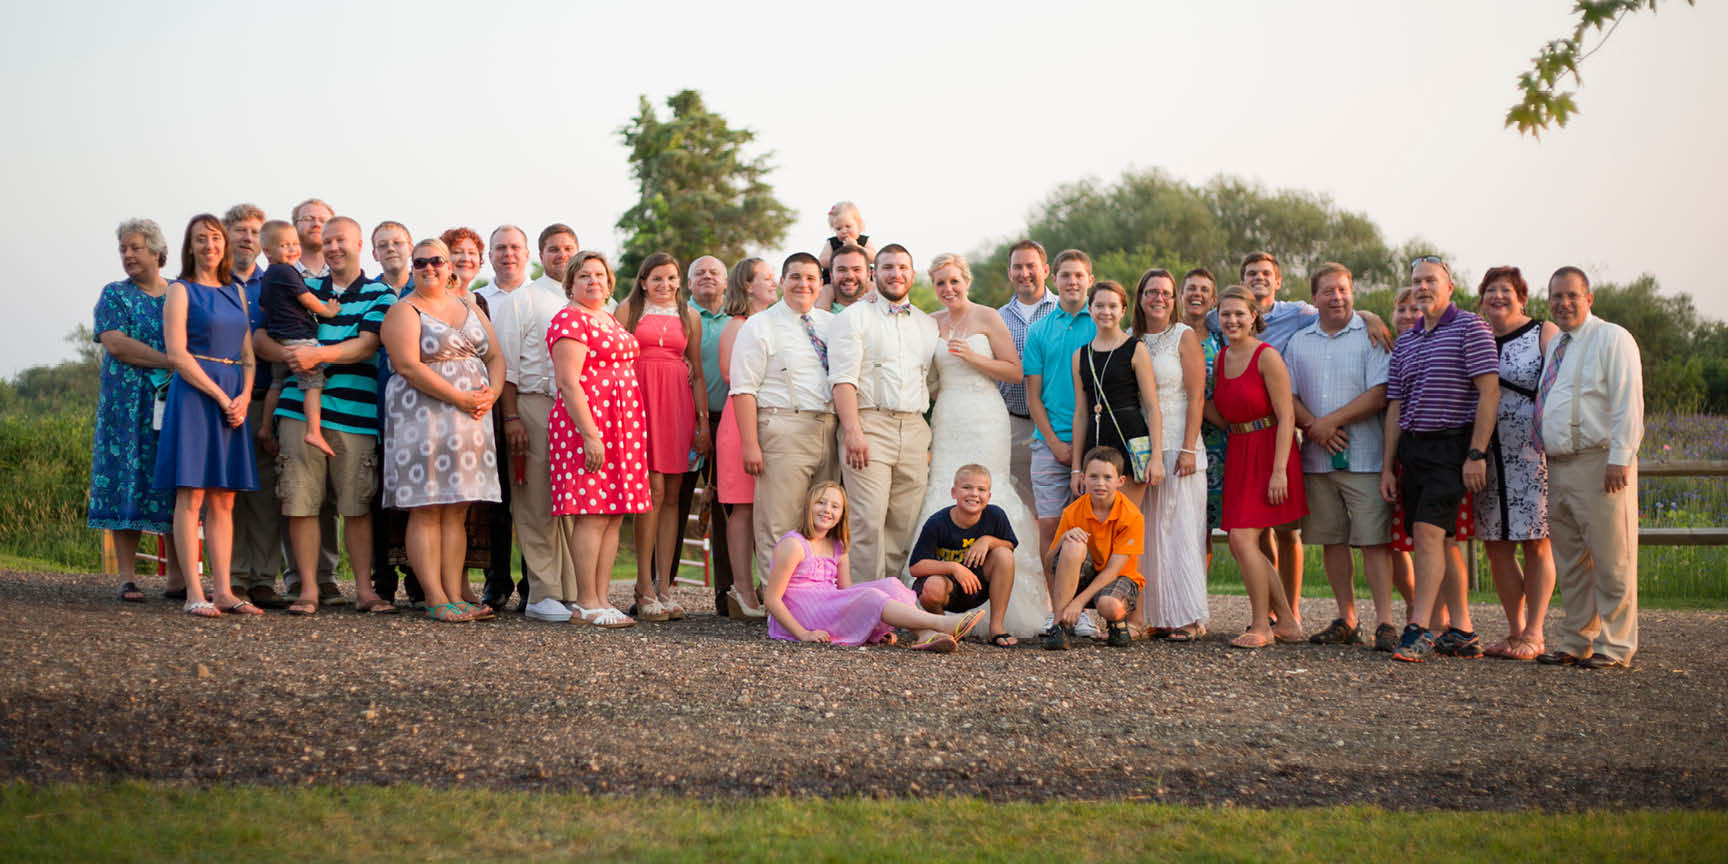 The groom's large family portrait.